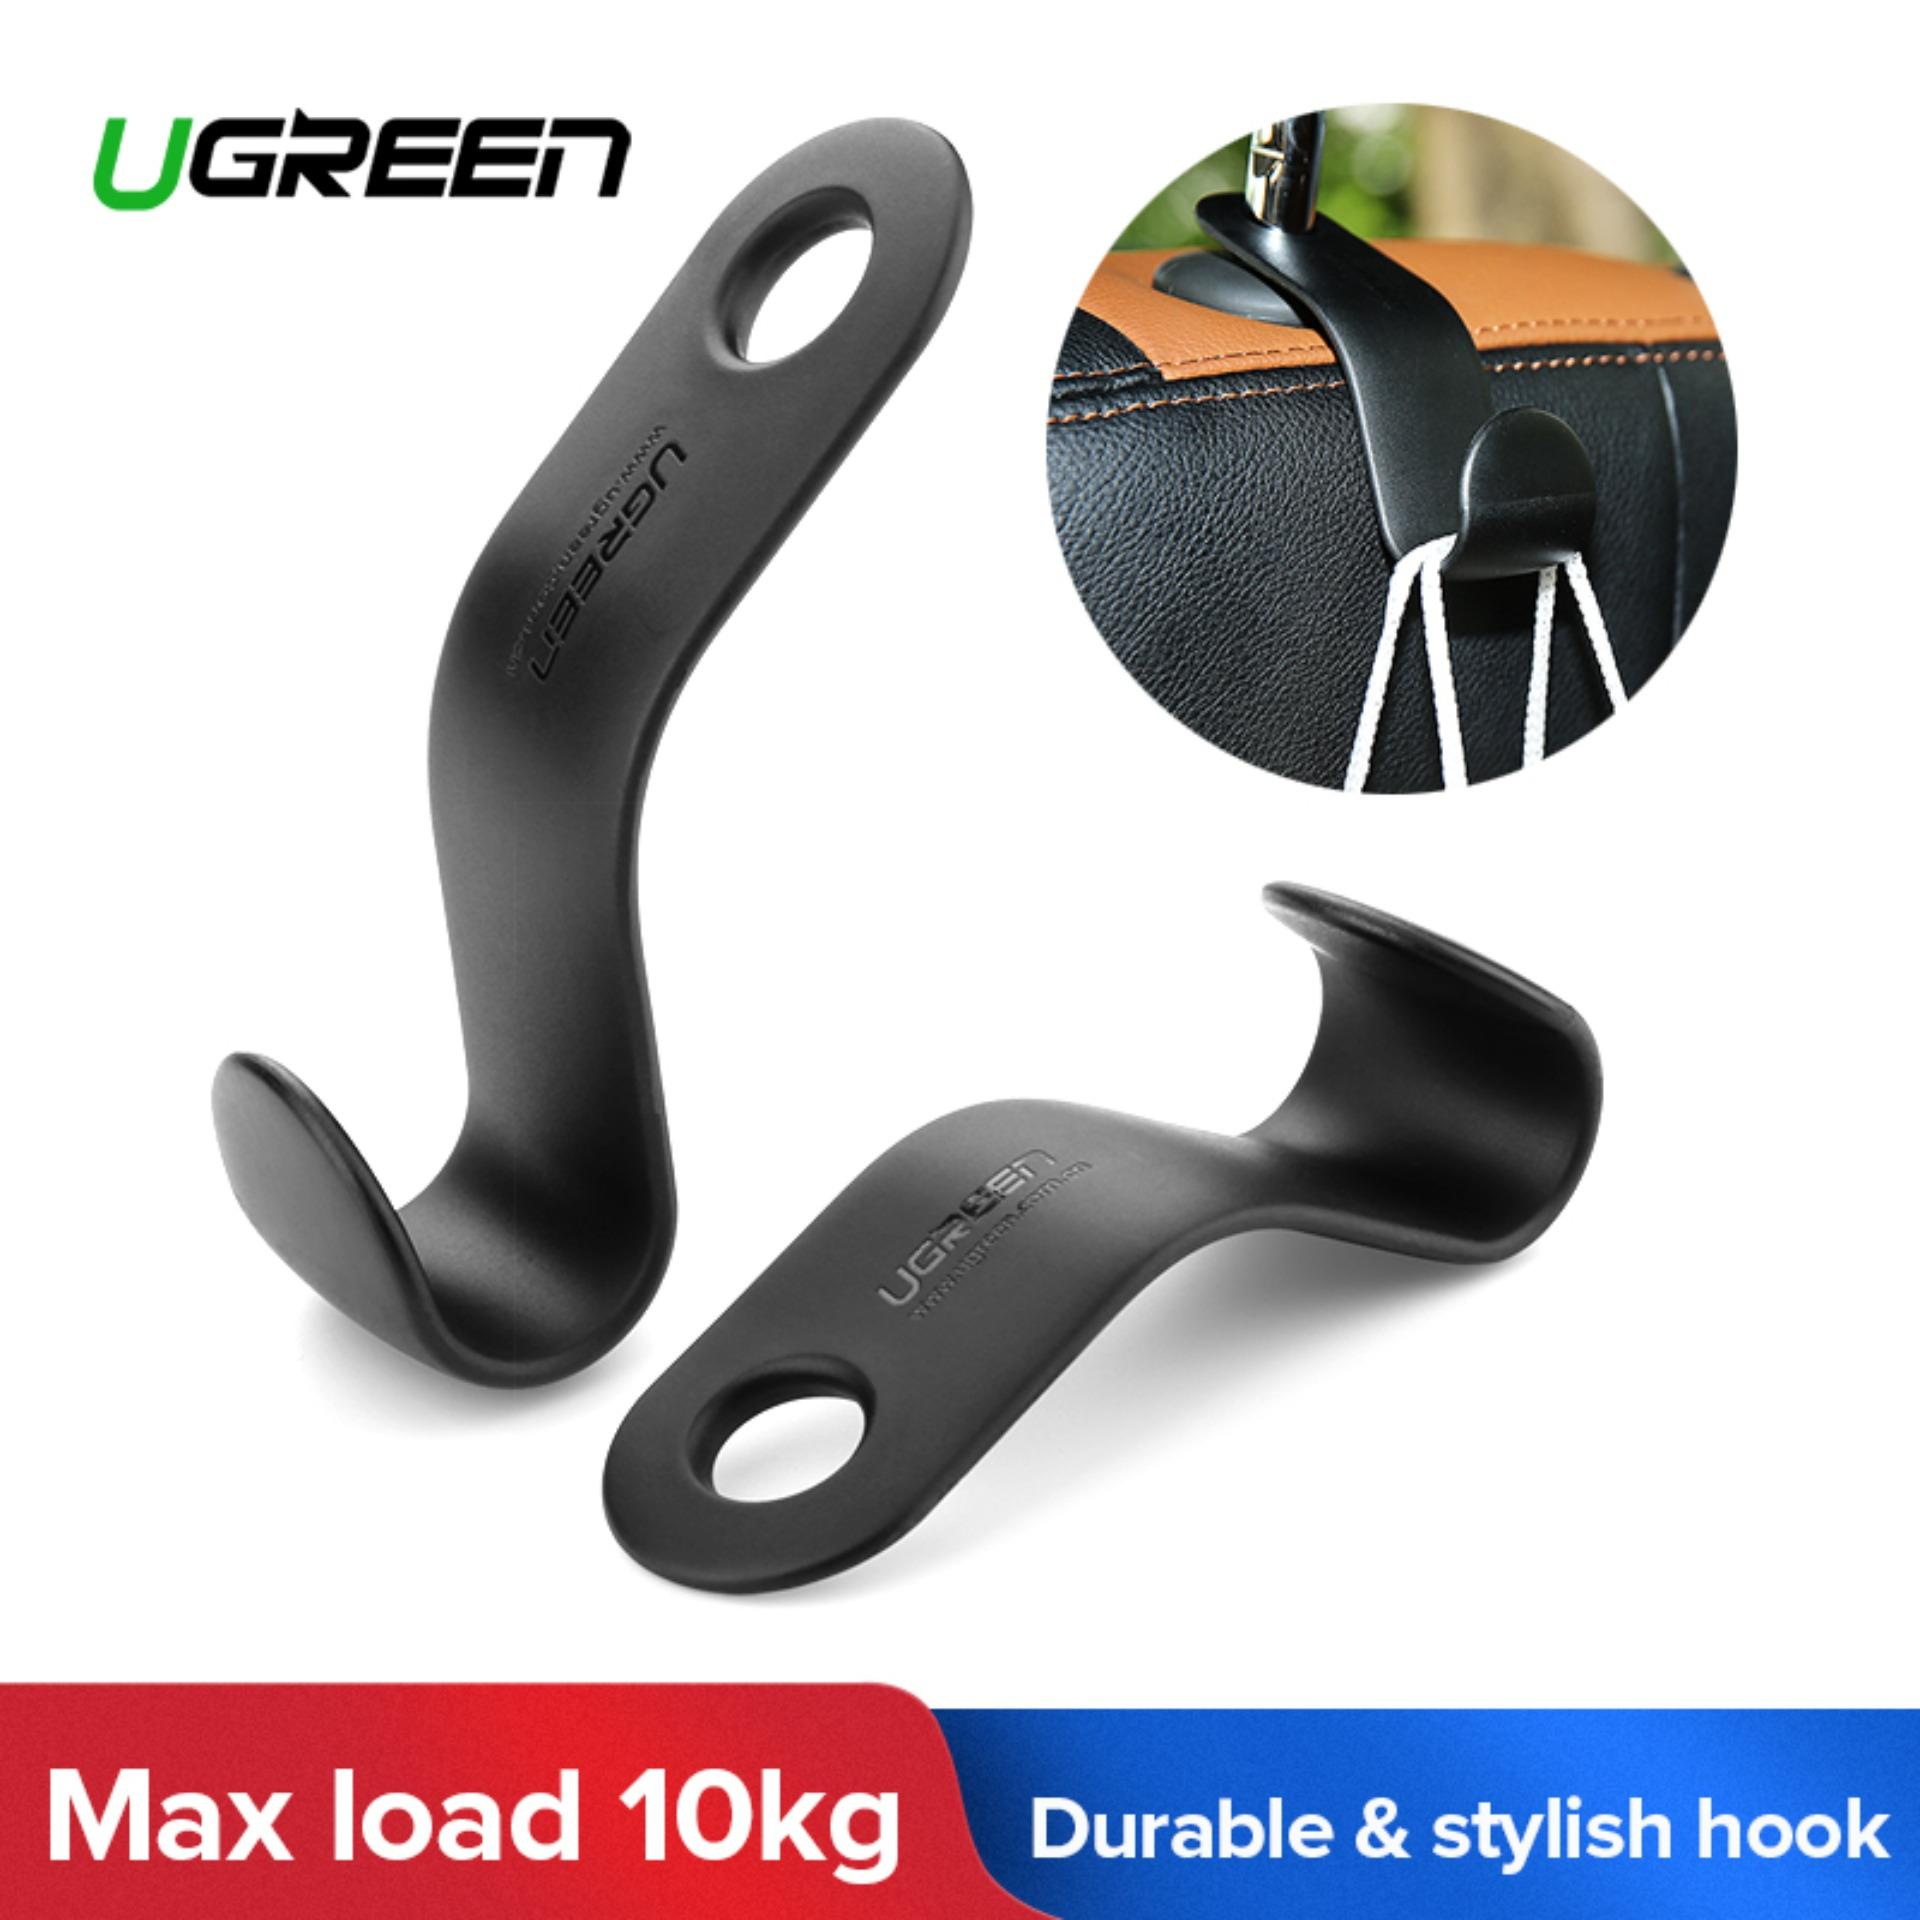 Ugreen 2pcs/set Car Back Seat Headrest Hanger Holder Hooks (black)-Intl By Ugreen Flagship Store.